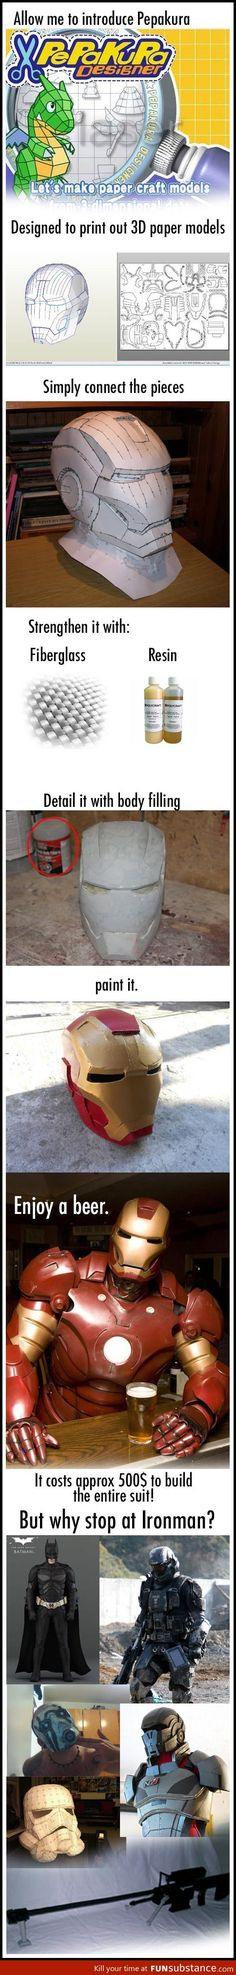 Make your own Iron Man suit @Virginia Kraljevic Allred